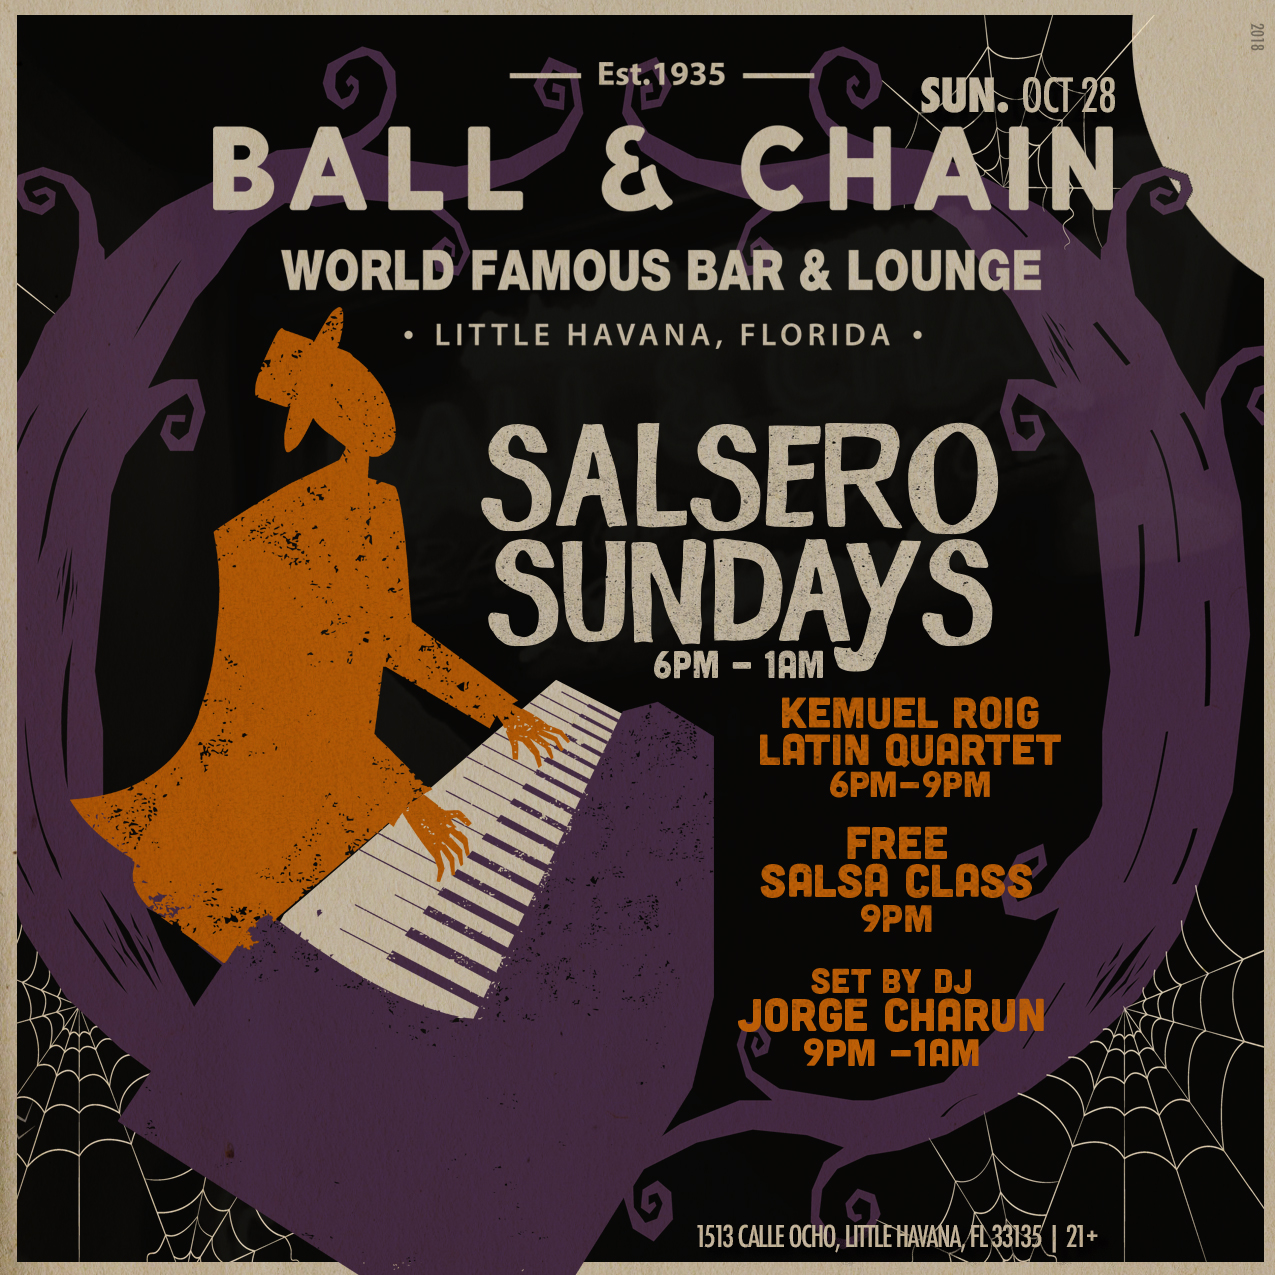 Salsa Sundays at Ball & Chain